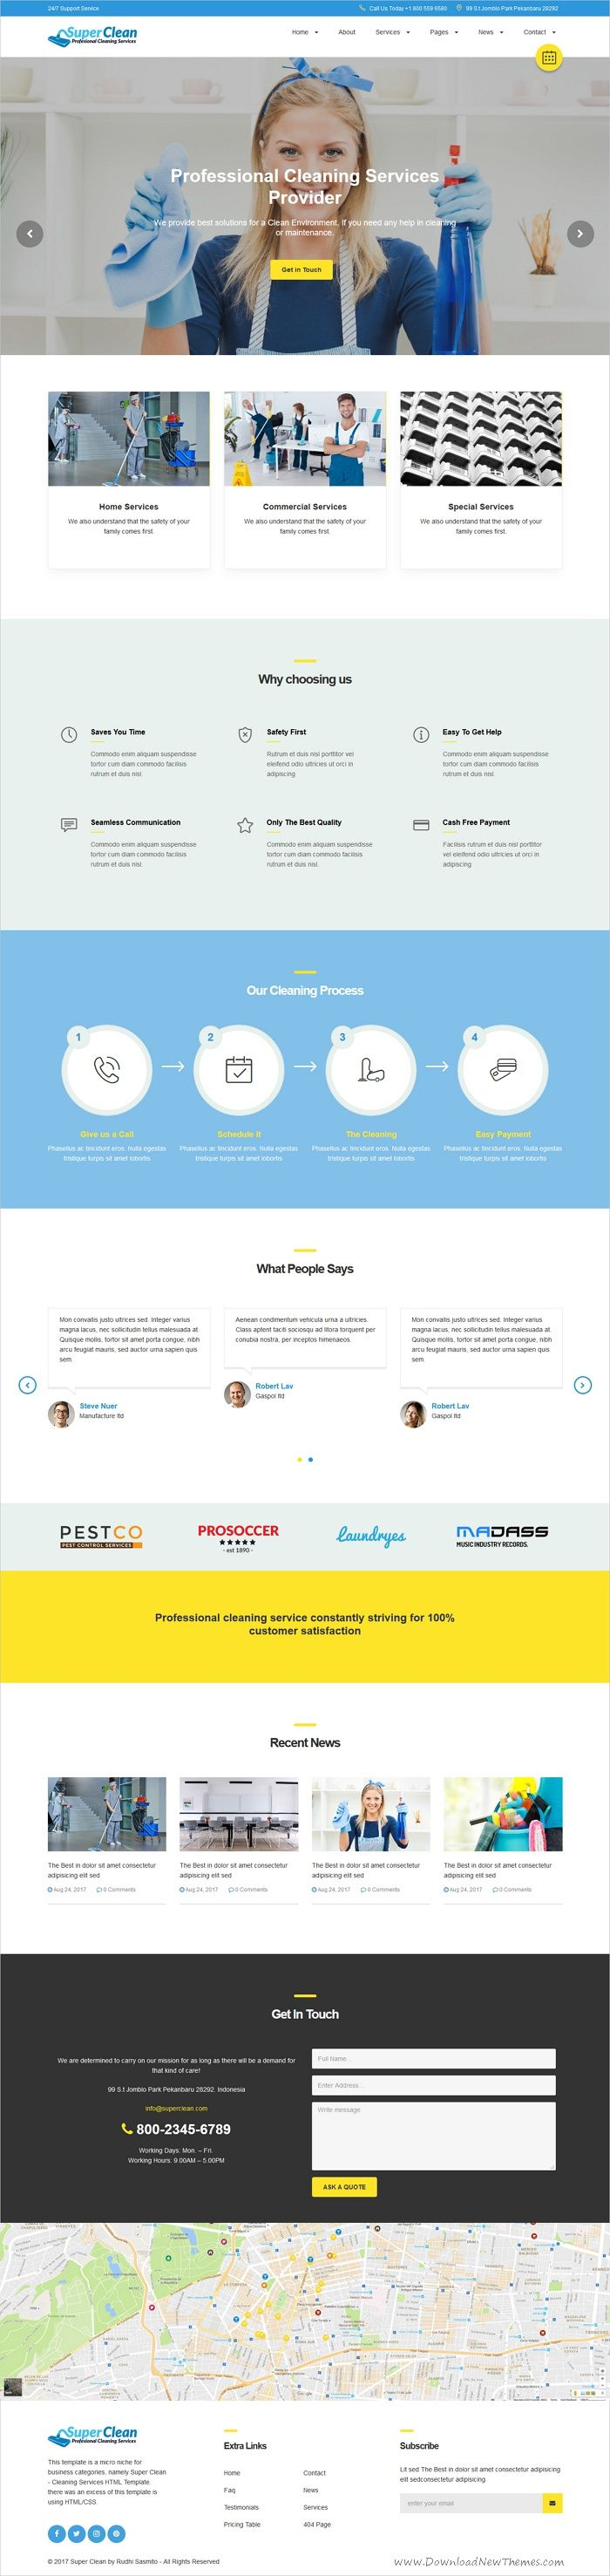 Super clean and unique and modern design 2in1 #bootstrap template for cleaning #service companies website download now > https://themeforest.net/item/super-clean-cleaning-services-html-template/19947280?ref=Datasata